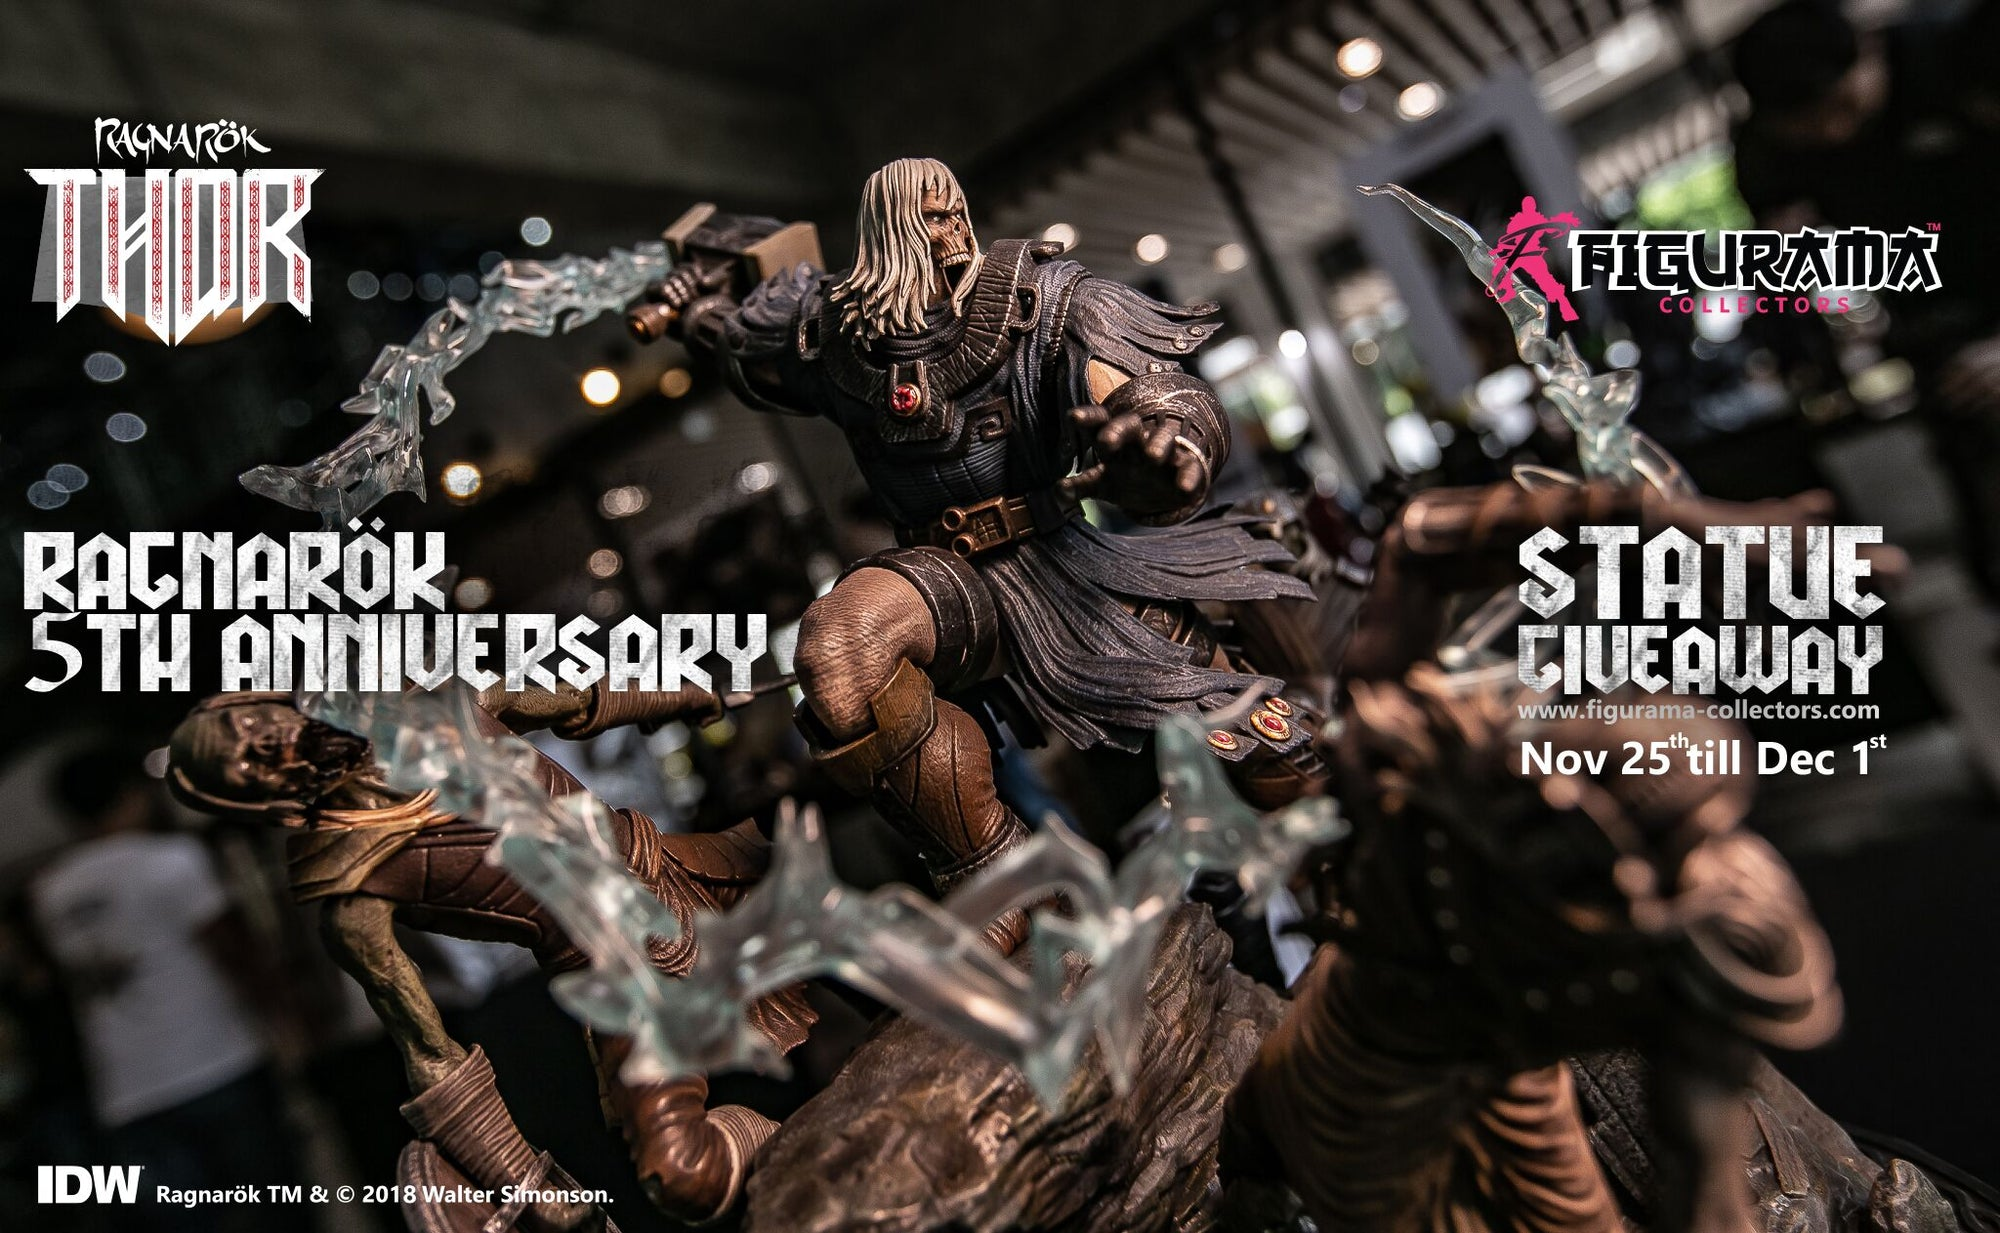 FIGURAMA COLLECTORS CELEBRATES 5 YEARS OF THOR: RAGNAROK WITH A STATUE GIVEAWAY!